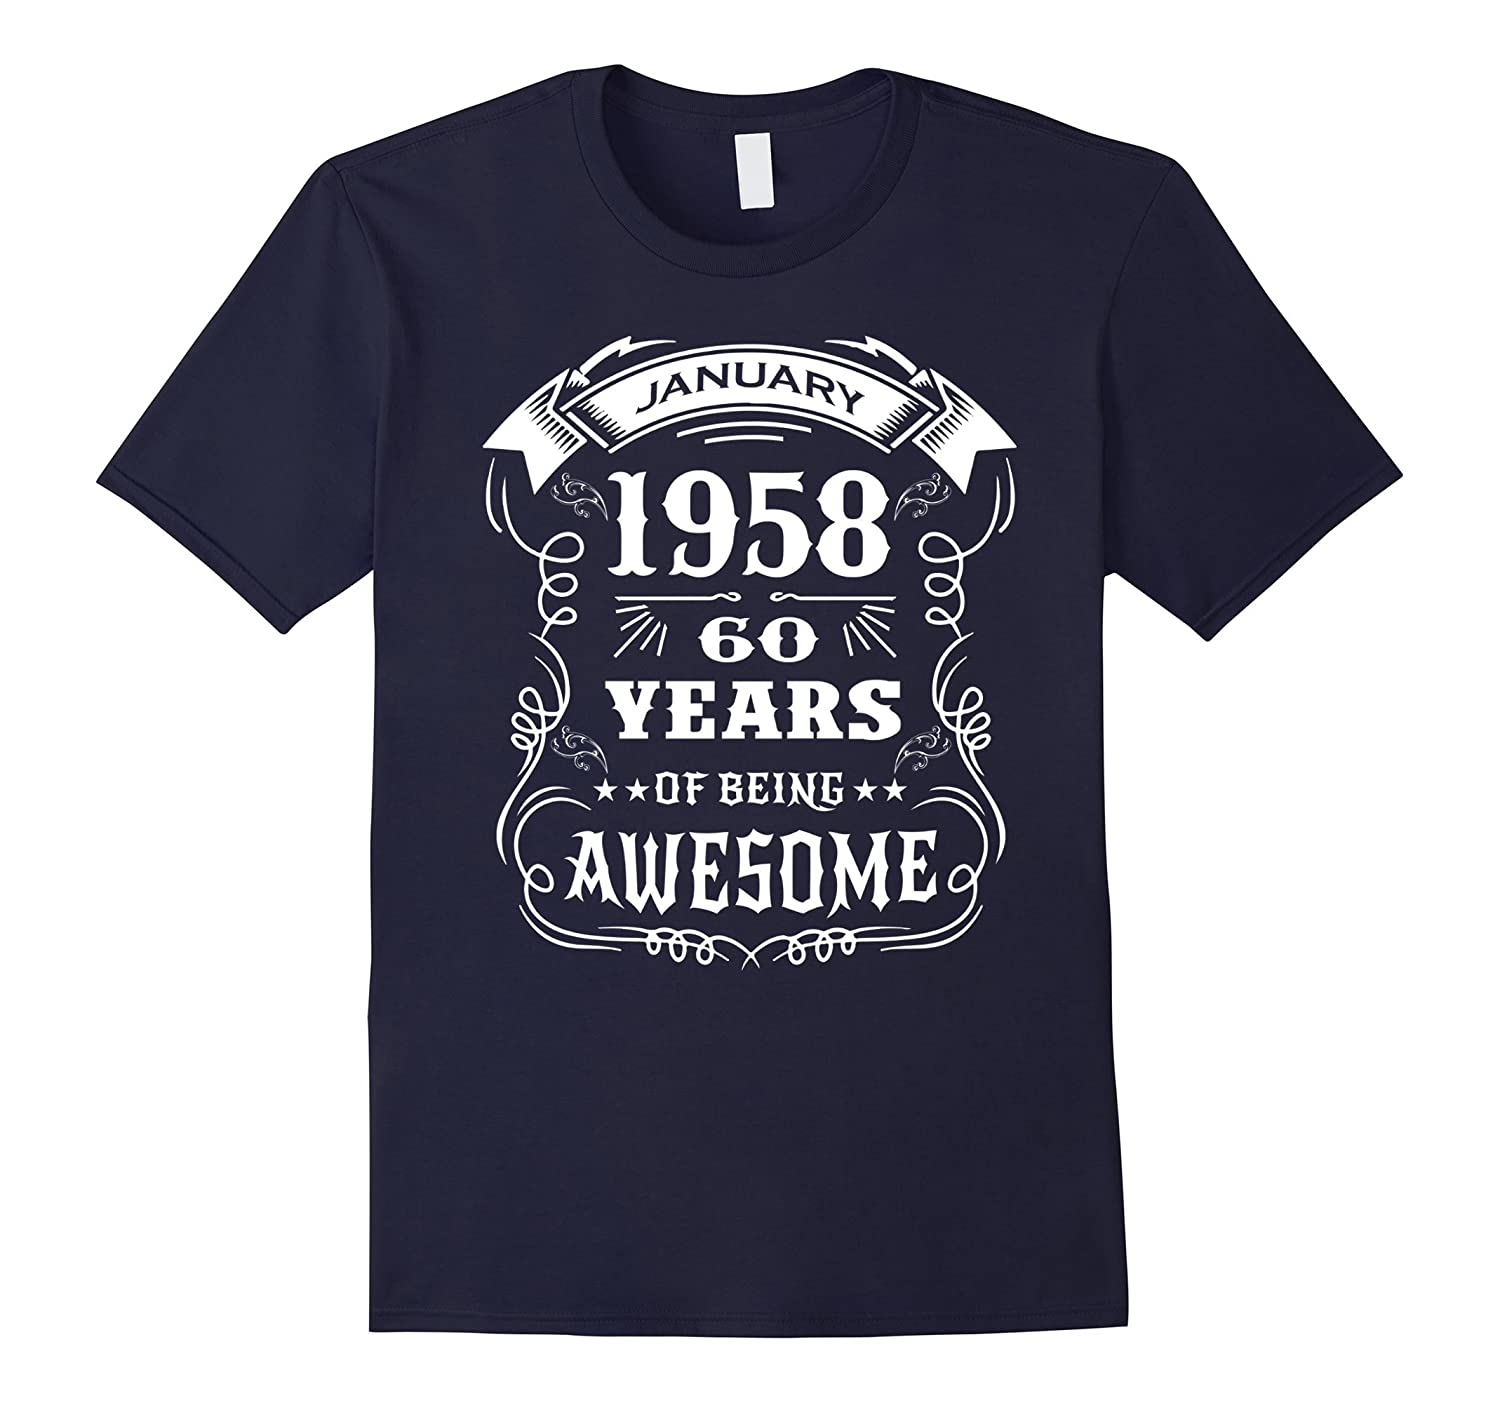 60th Birthday Gift - Born in January 1958 T-Shirt-ah my shirt one gift